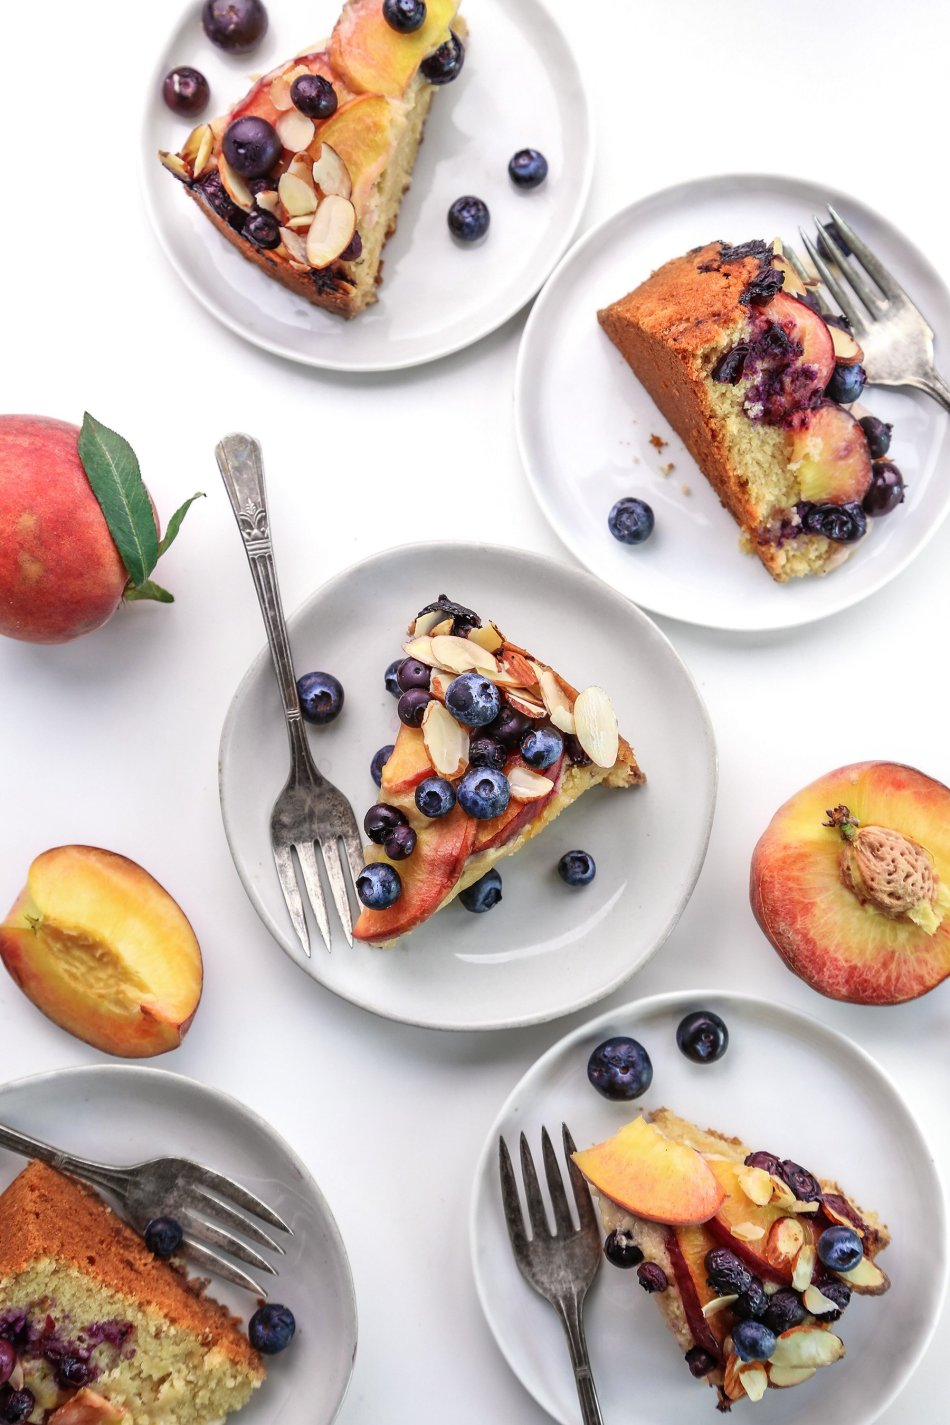 Blueberry Peach Coffee Cake | Vegan friendly and refined sugar free with gluten free option